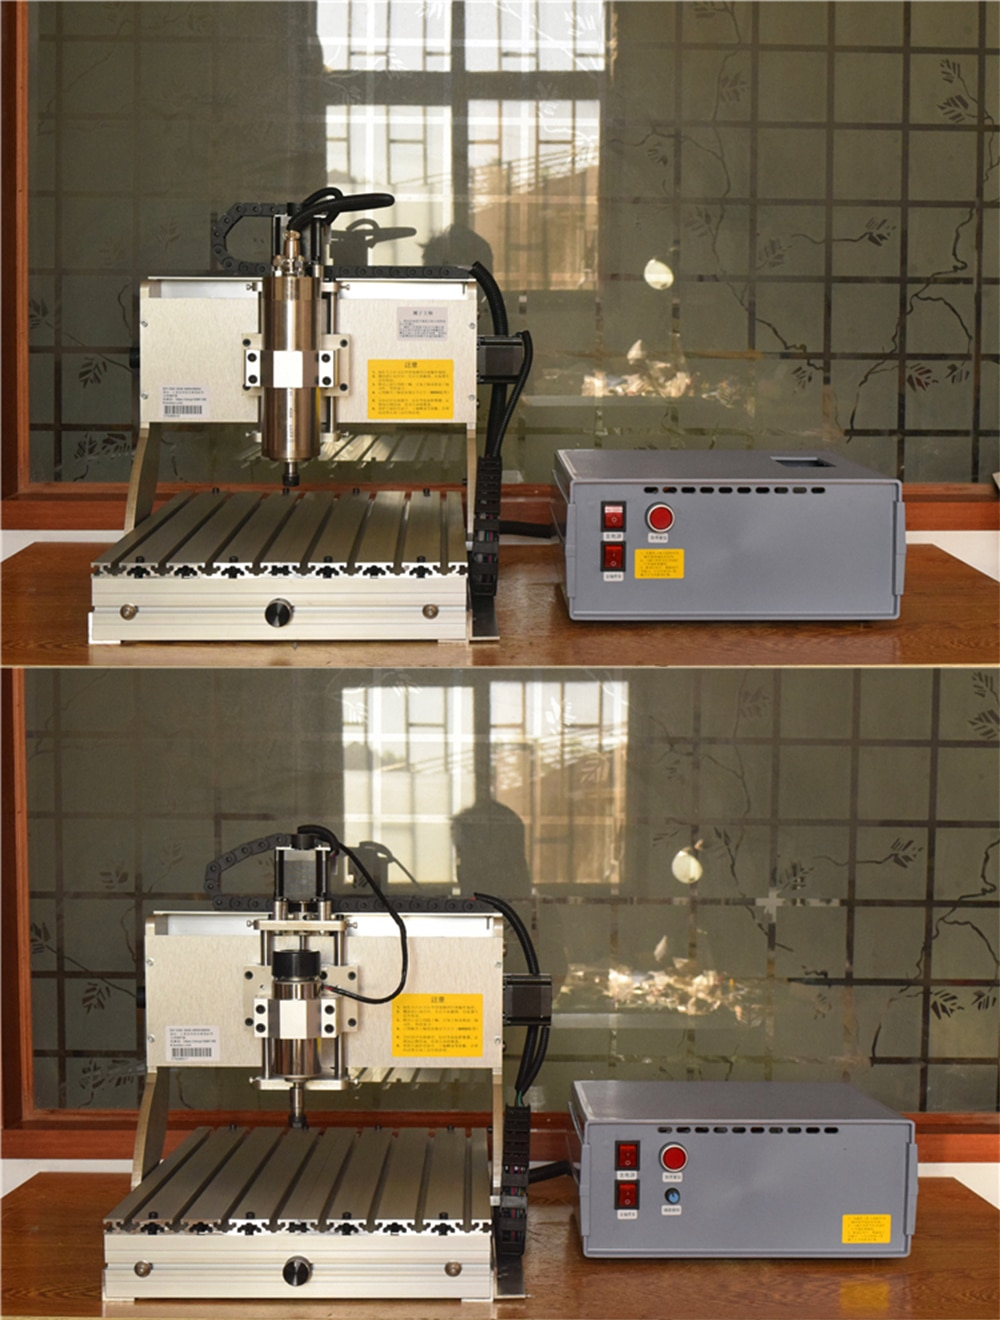 CNC 3040  400W / 800W Spindle 3 Axis CNC Router Engraving PCB Milling Cutter Drilling Machine 220V enlarge